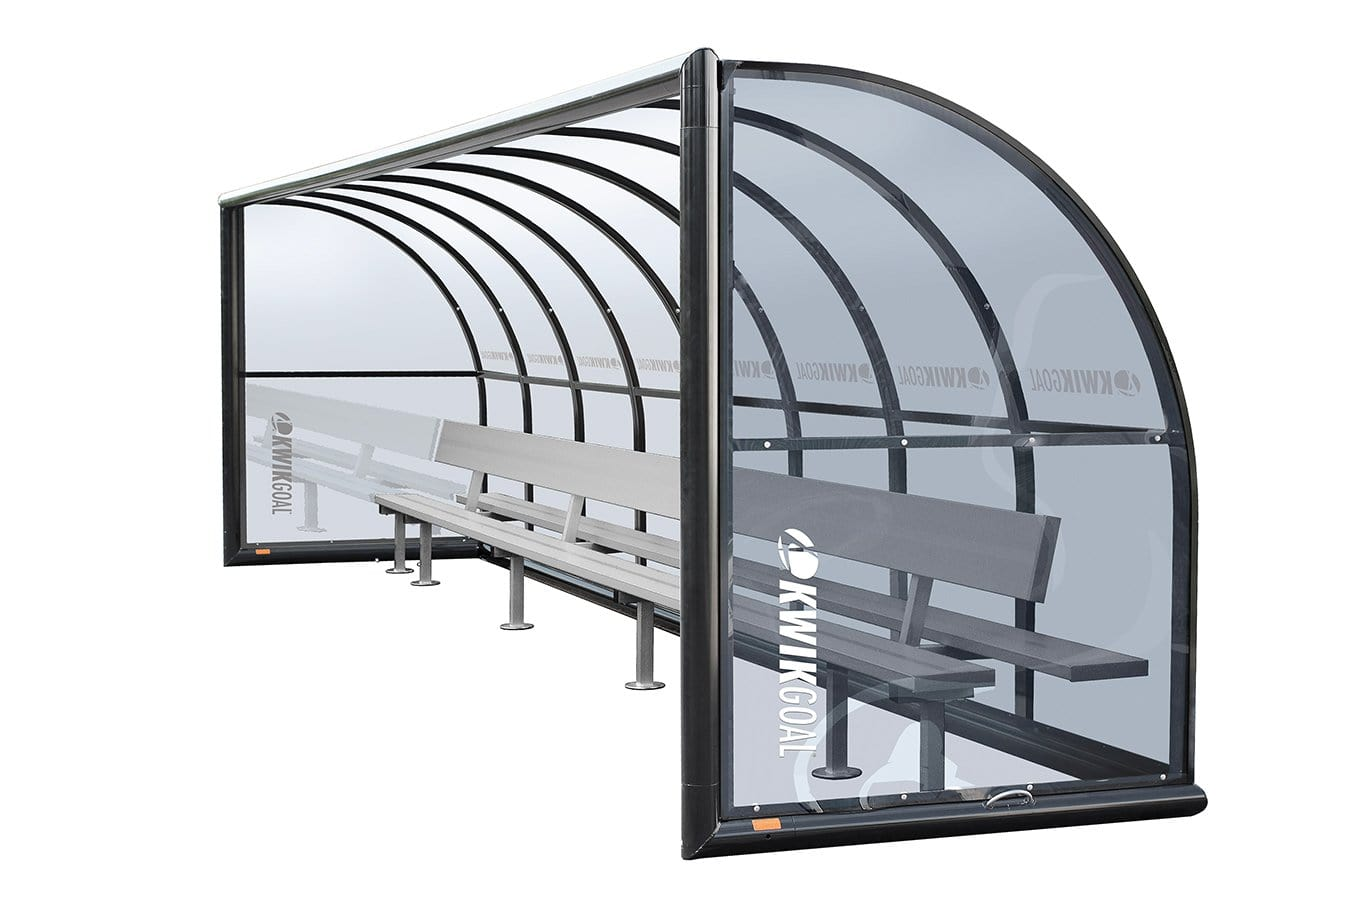 Grey-tinted Polycarbonate Shelter With Aluminum Bench